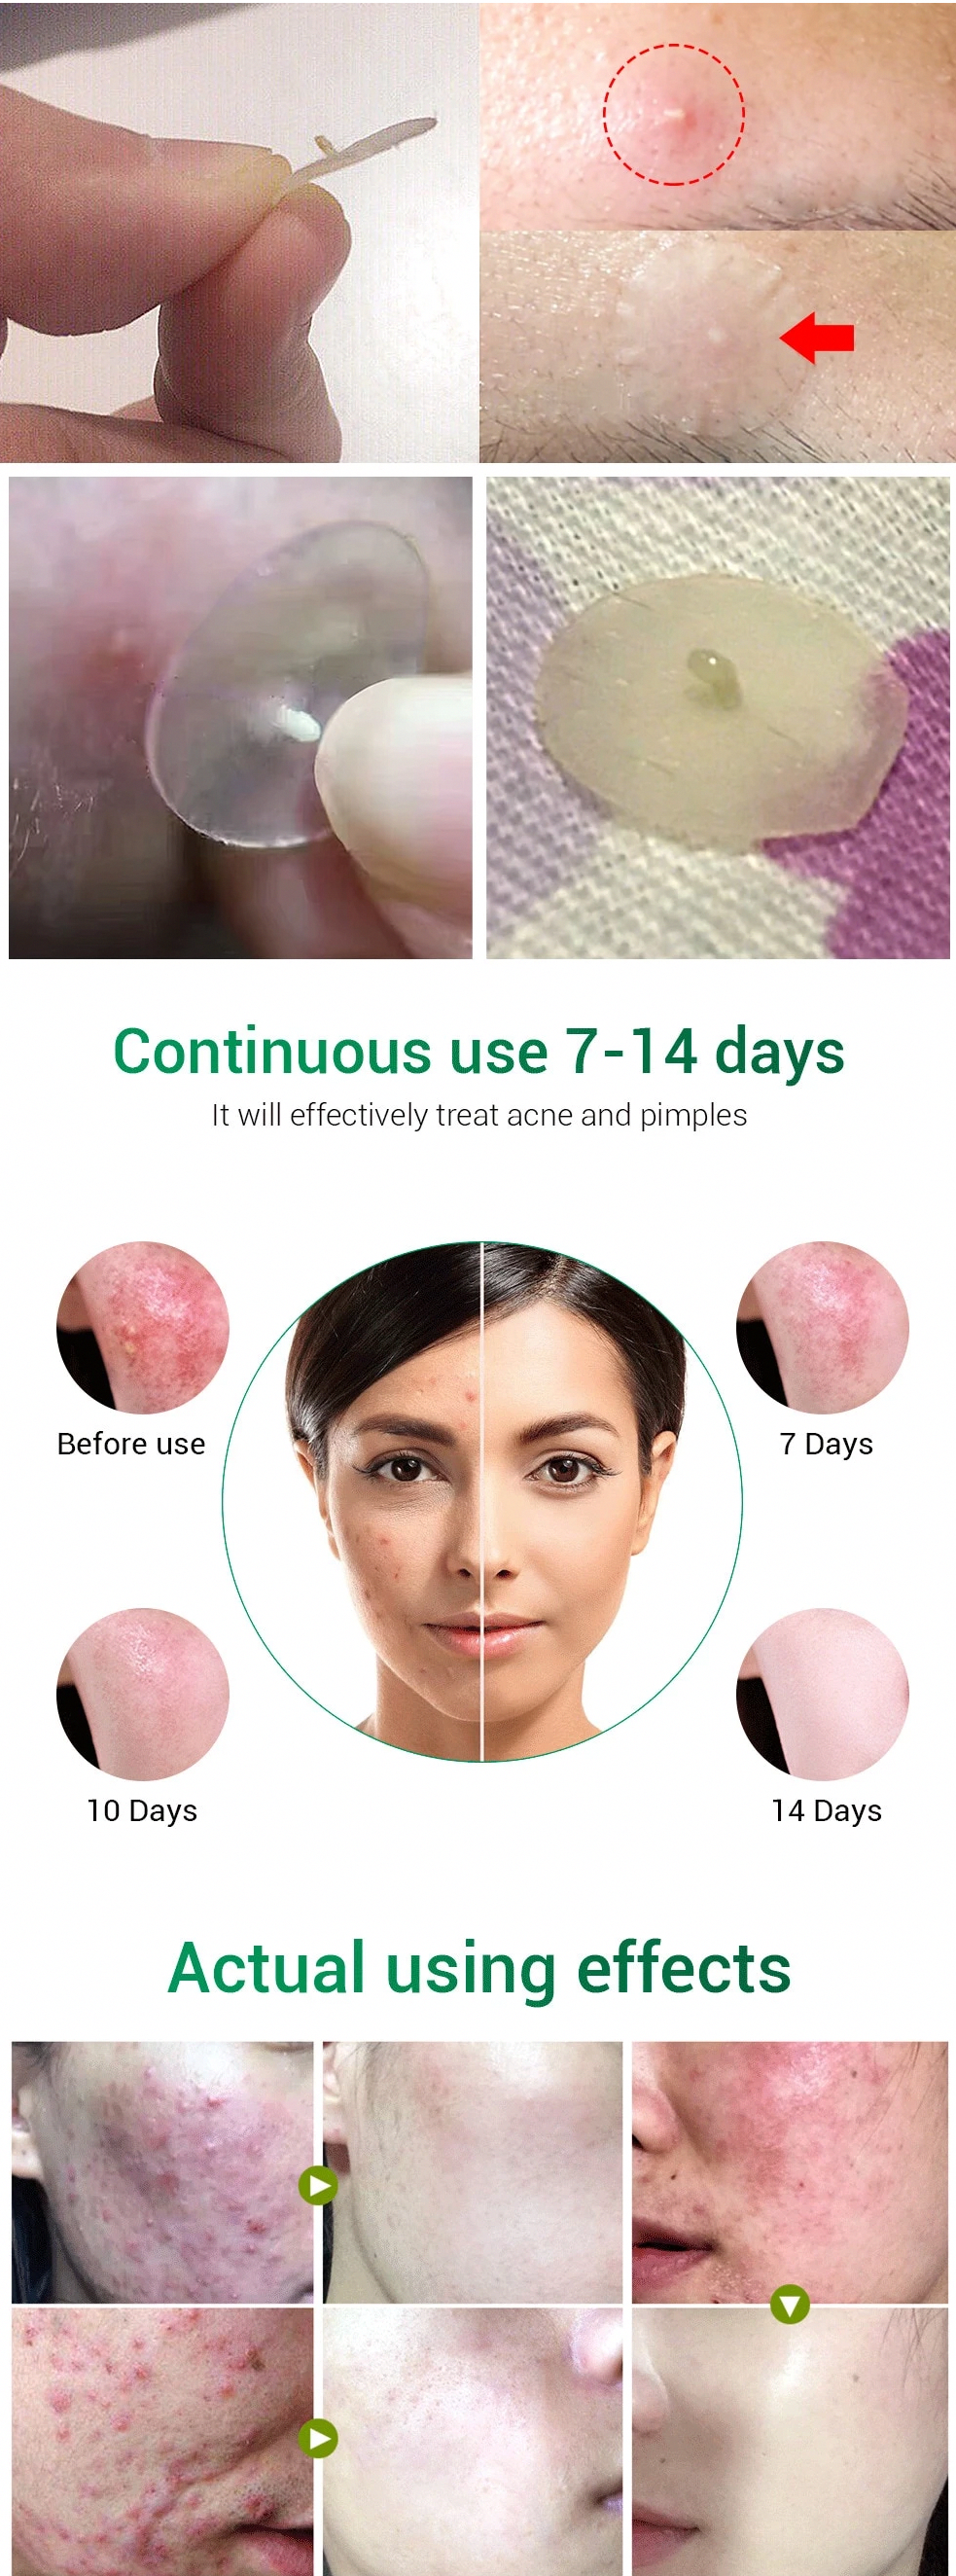 ACNE PIMPLE PATCH FACE MASK in 2020 Warts on face, Sun